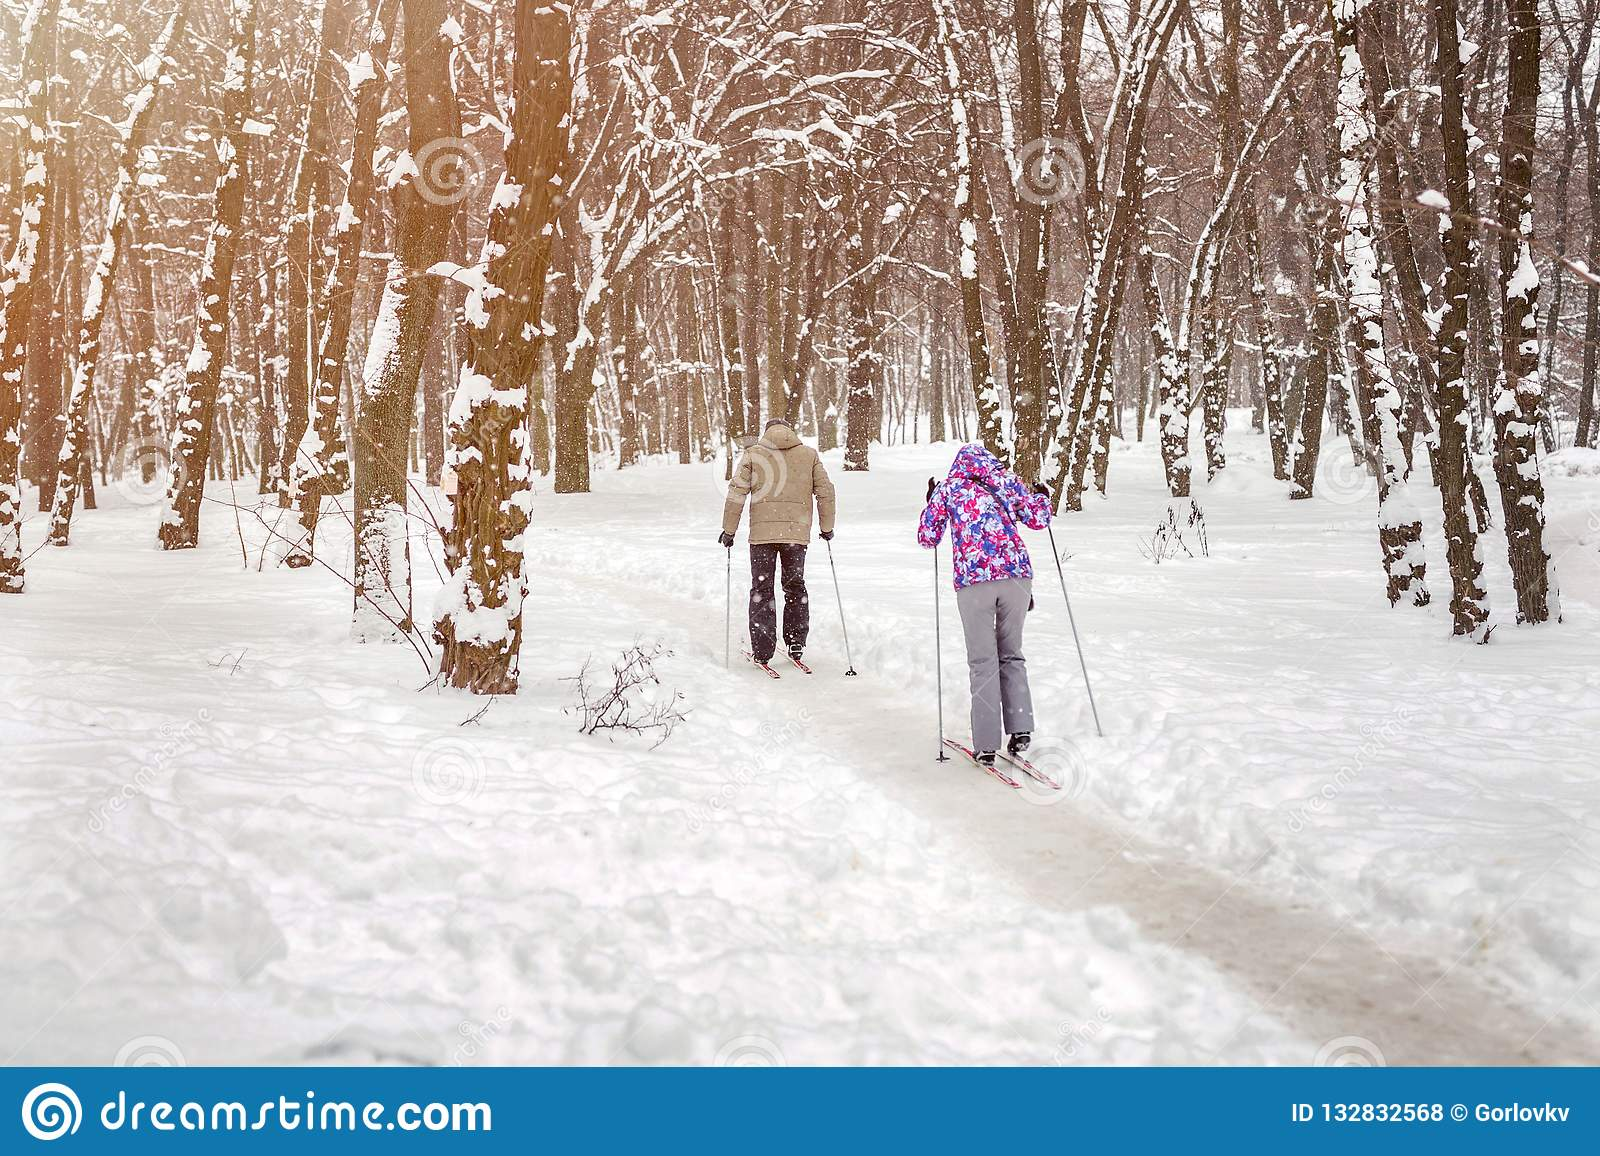 Couple of people enjoying cross-country skiing in city park or forest in winter. Family Sport outdoor activities in winter season